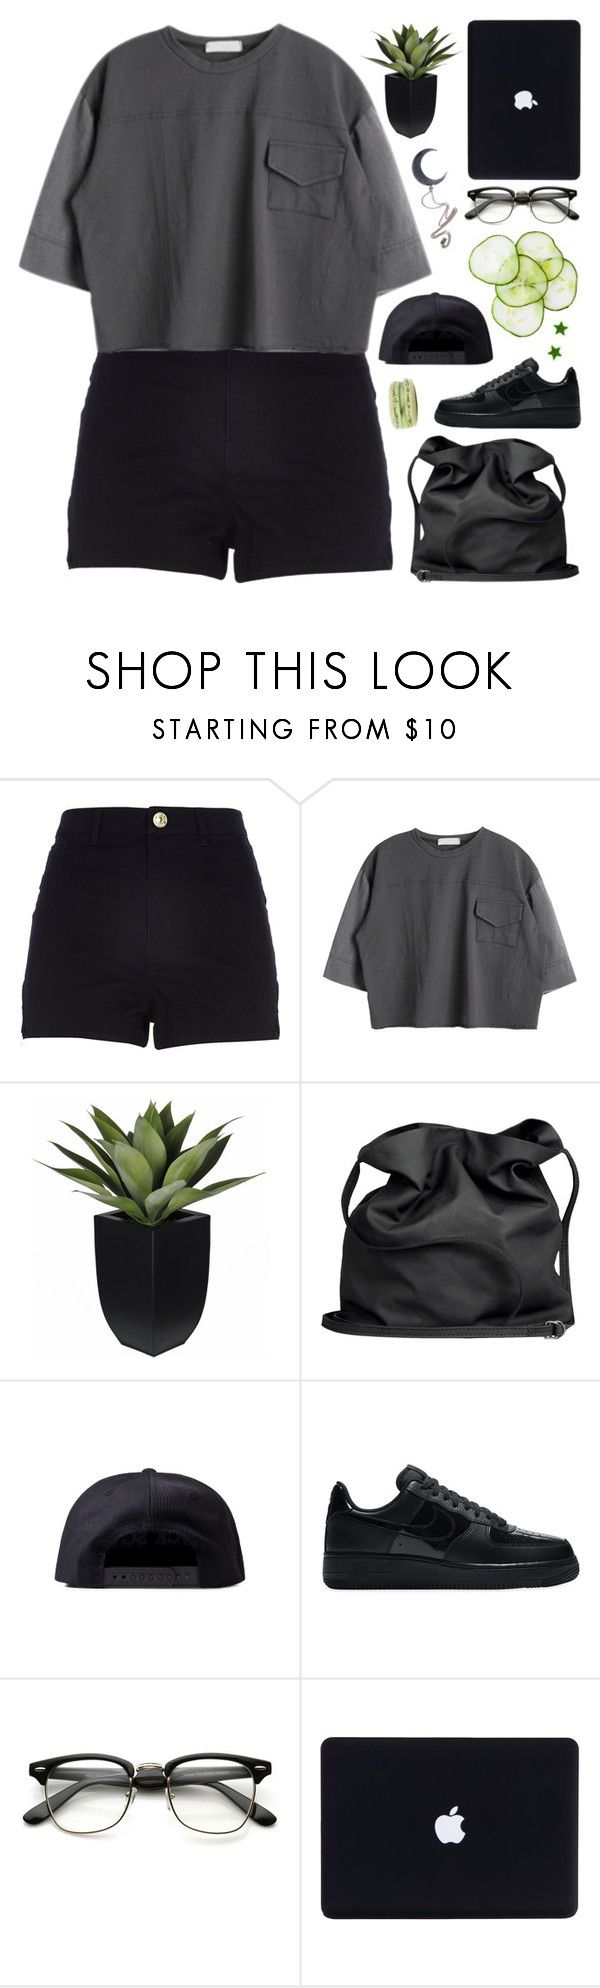 """[] JANELLE"" by korekara ❤ liked on Polyvore featuring River Island, Ann Demeulemeester, Black Scale, NIKE and Killstar"